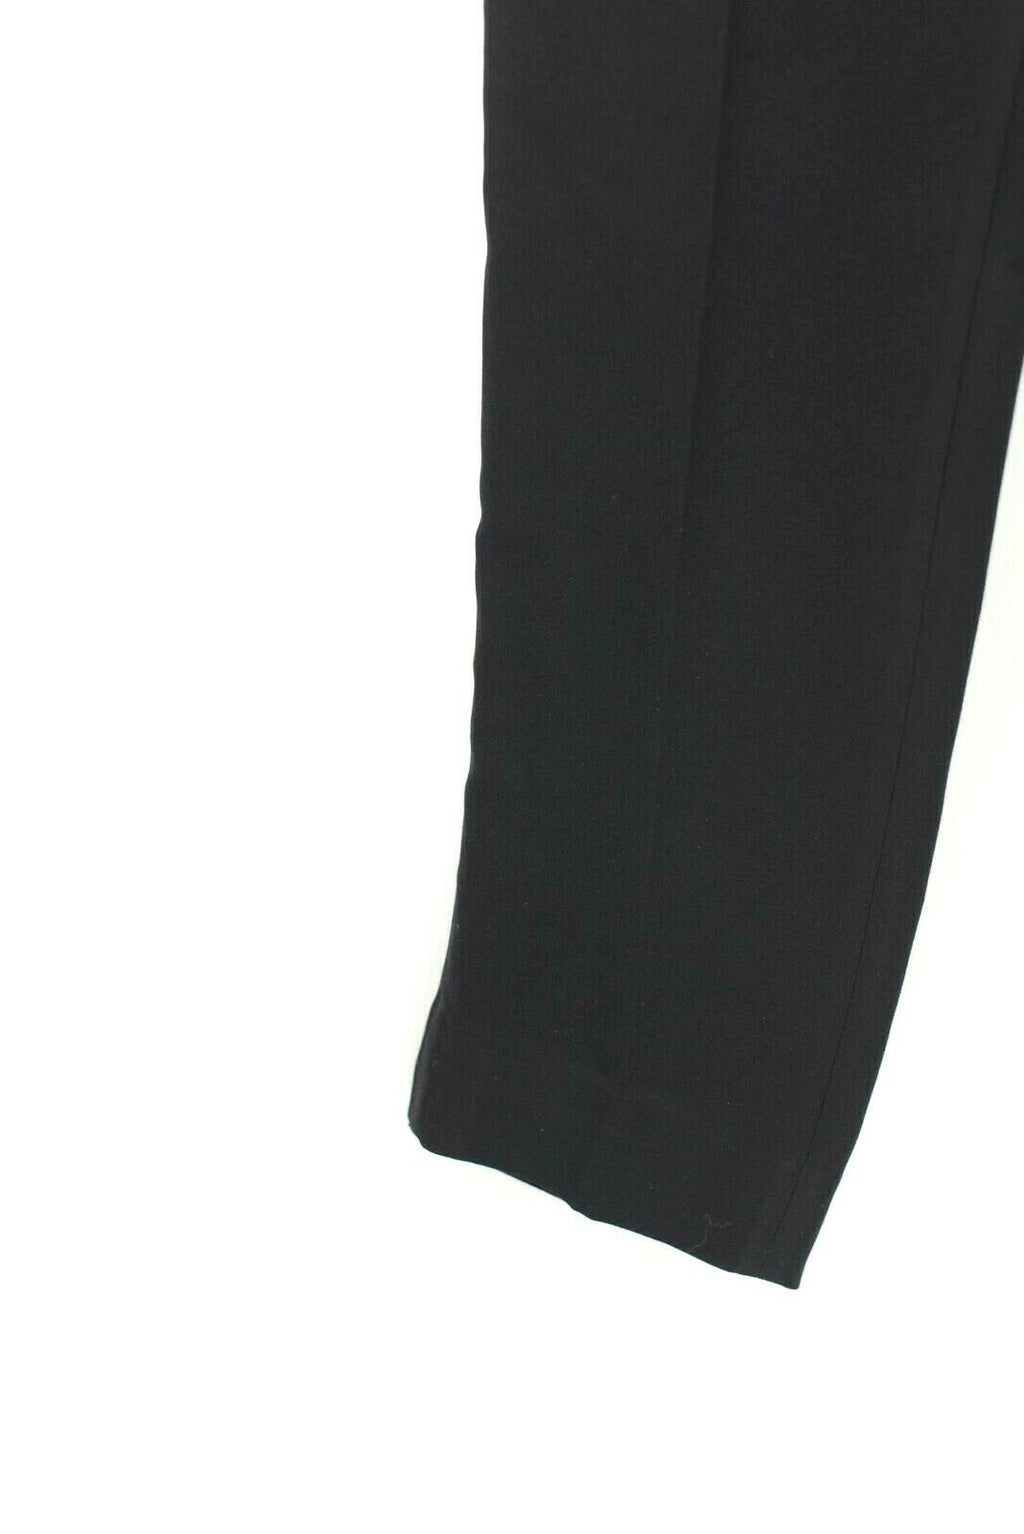 Tory Burch Womens Size 2 Black Pants Crepe Flat Front Wide Leg Pockets Trousers